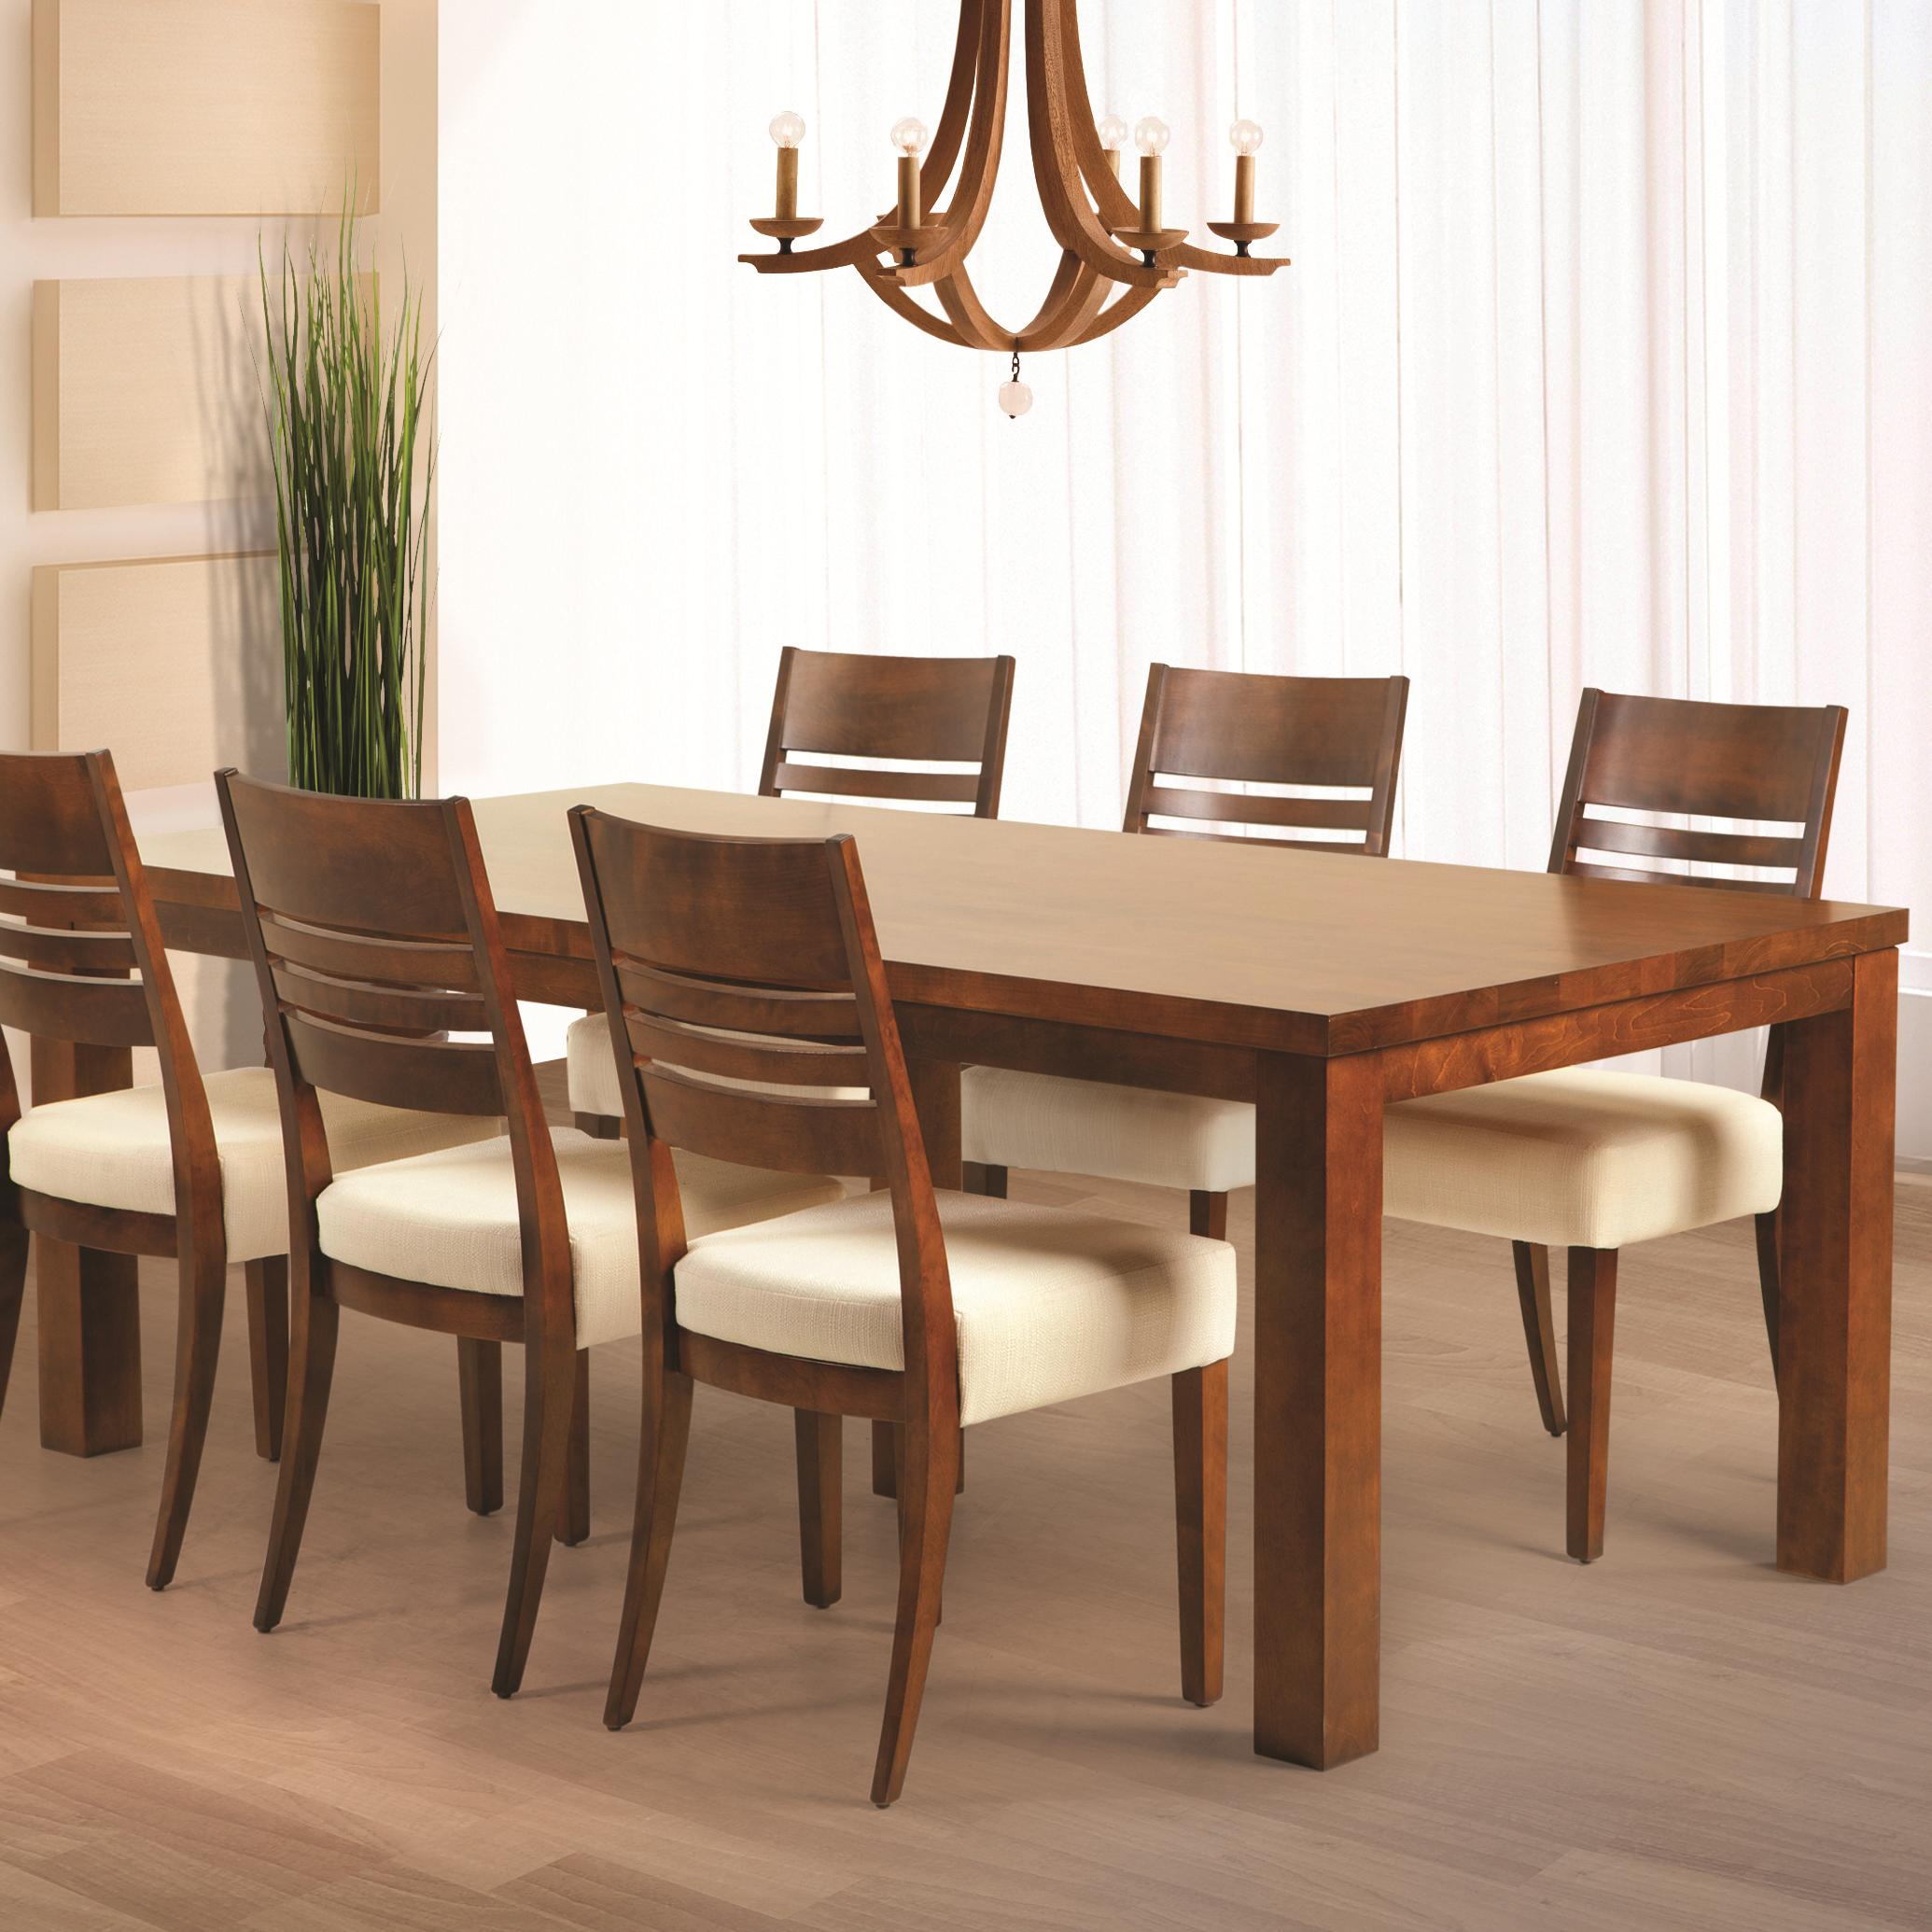 Bermex - Tables Casual Contemporary Dining Table by Bermex at Stoney Creek Furniture